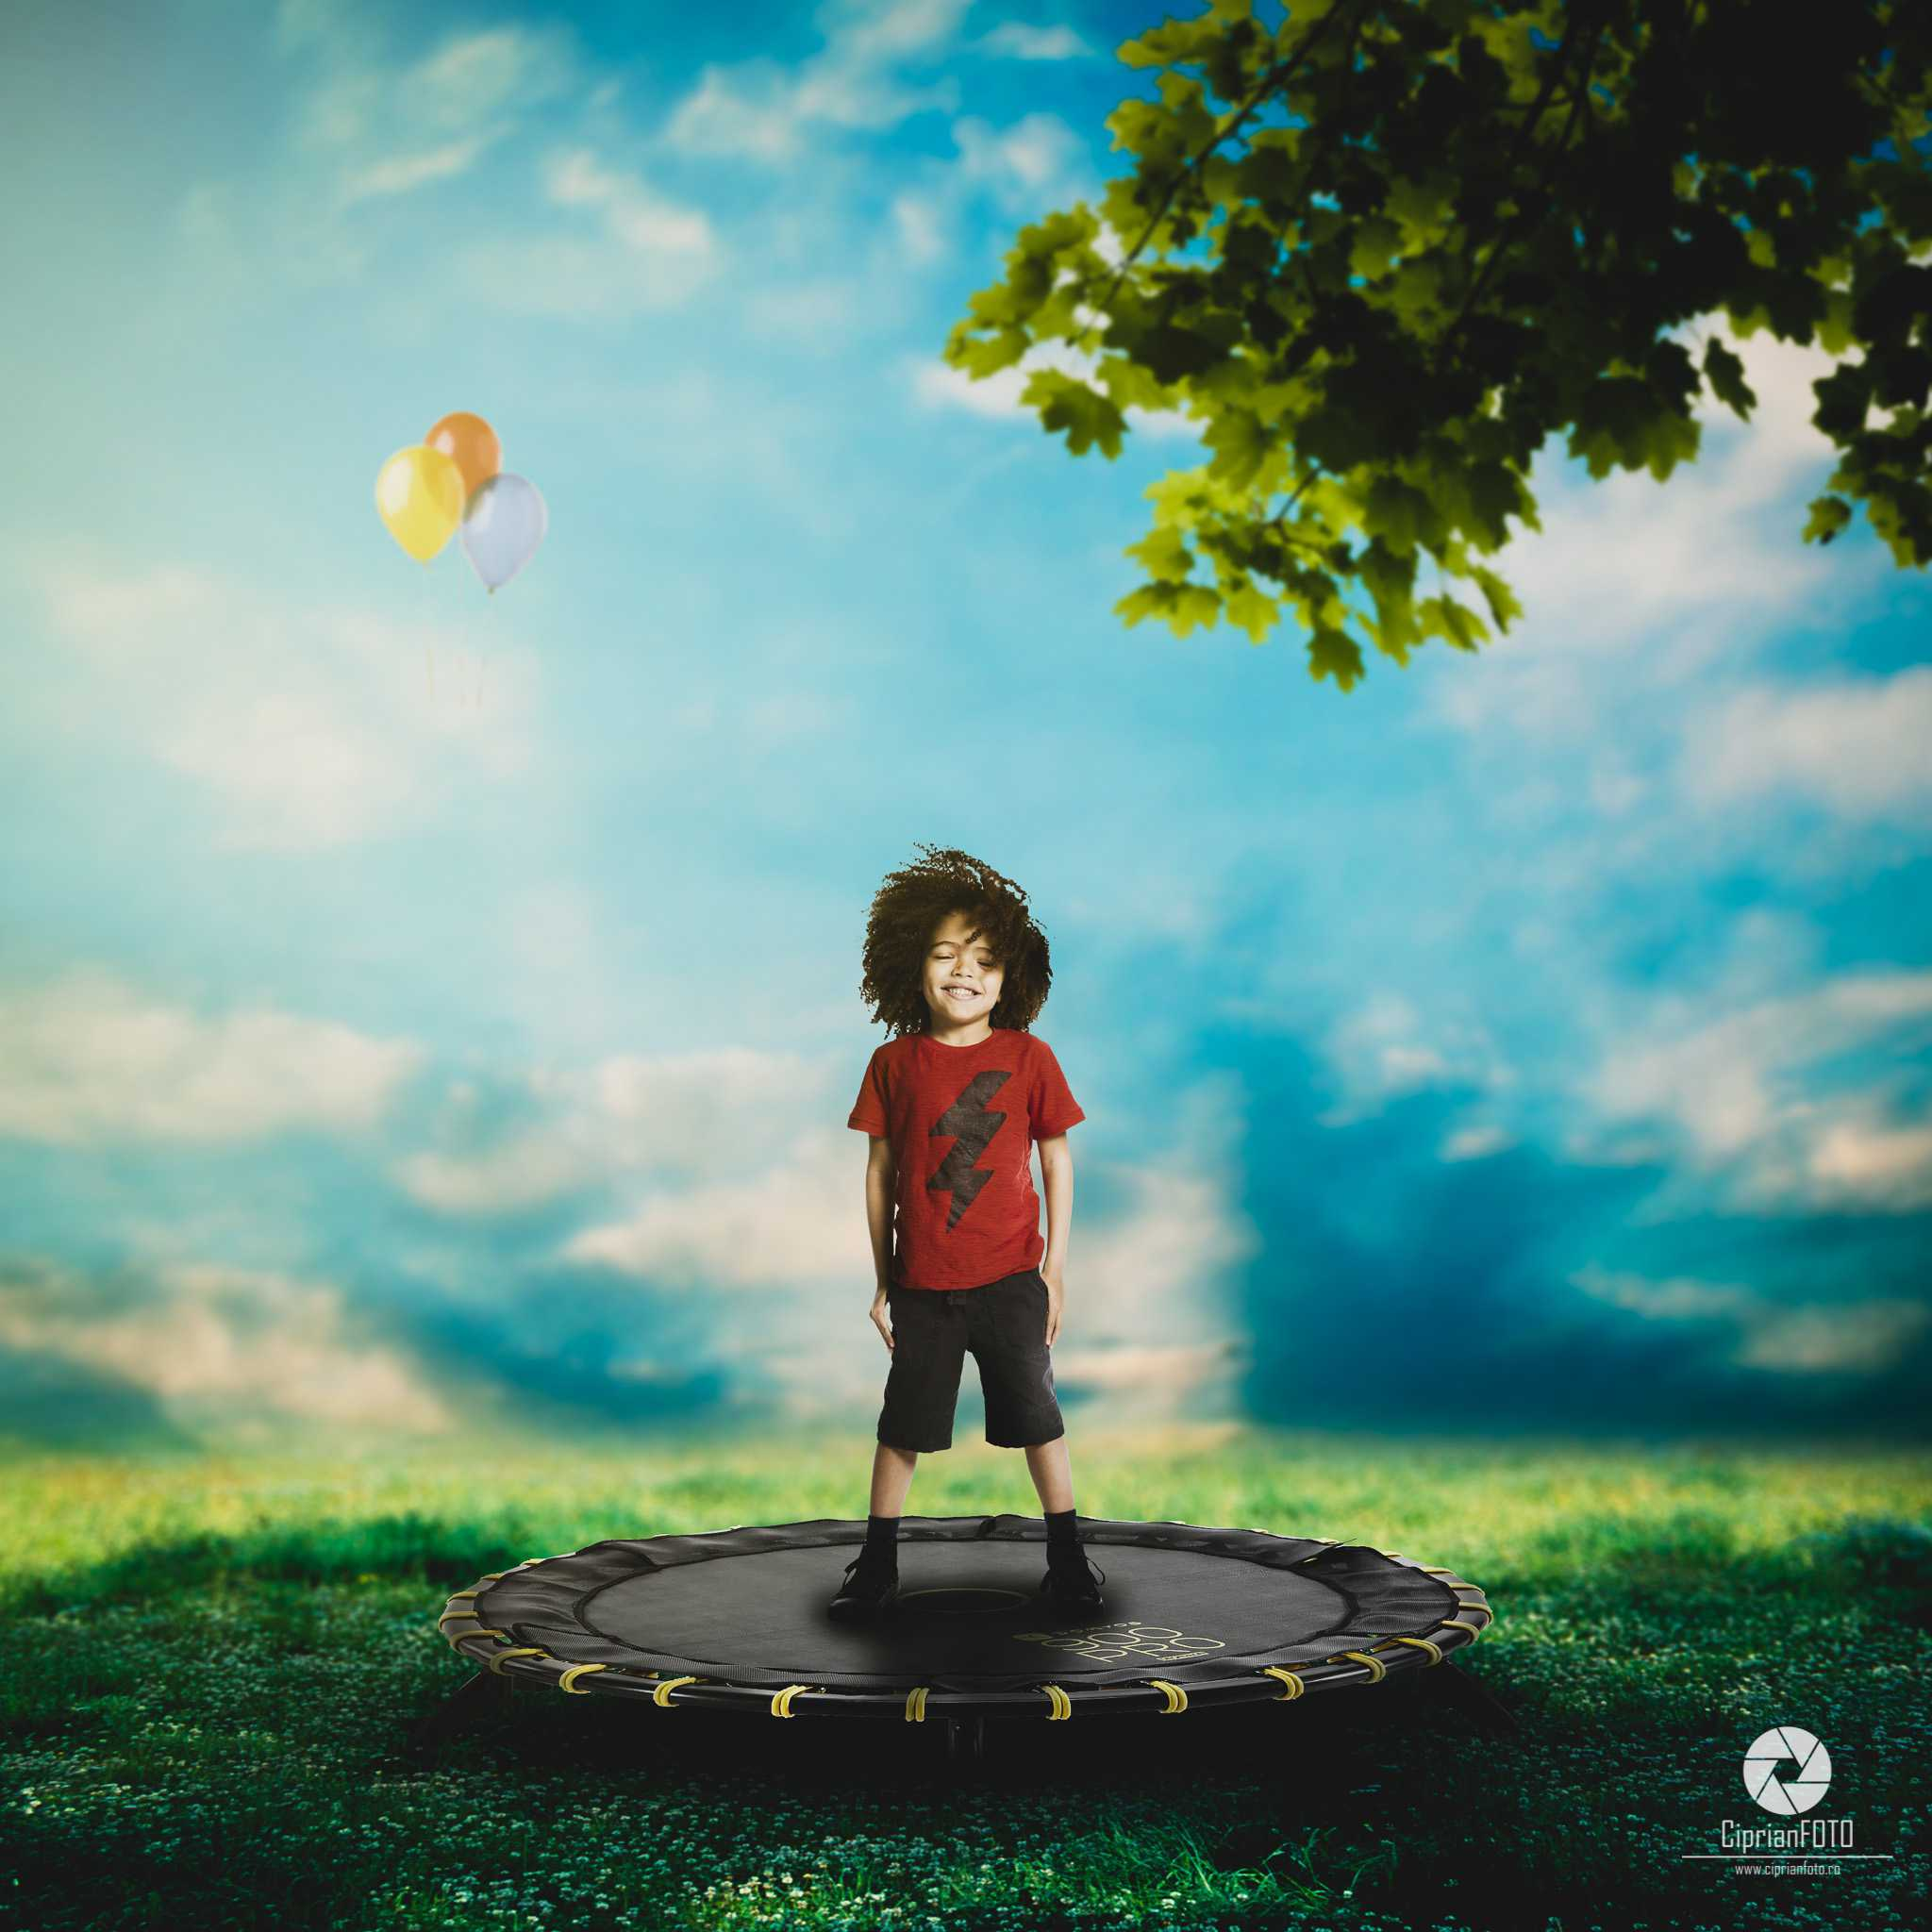 Children's Day, Photoshop Manipulation Tutorial, CiprianFOTO